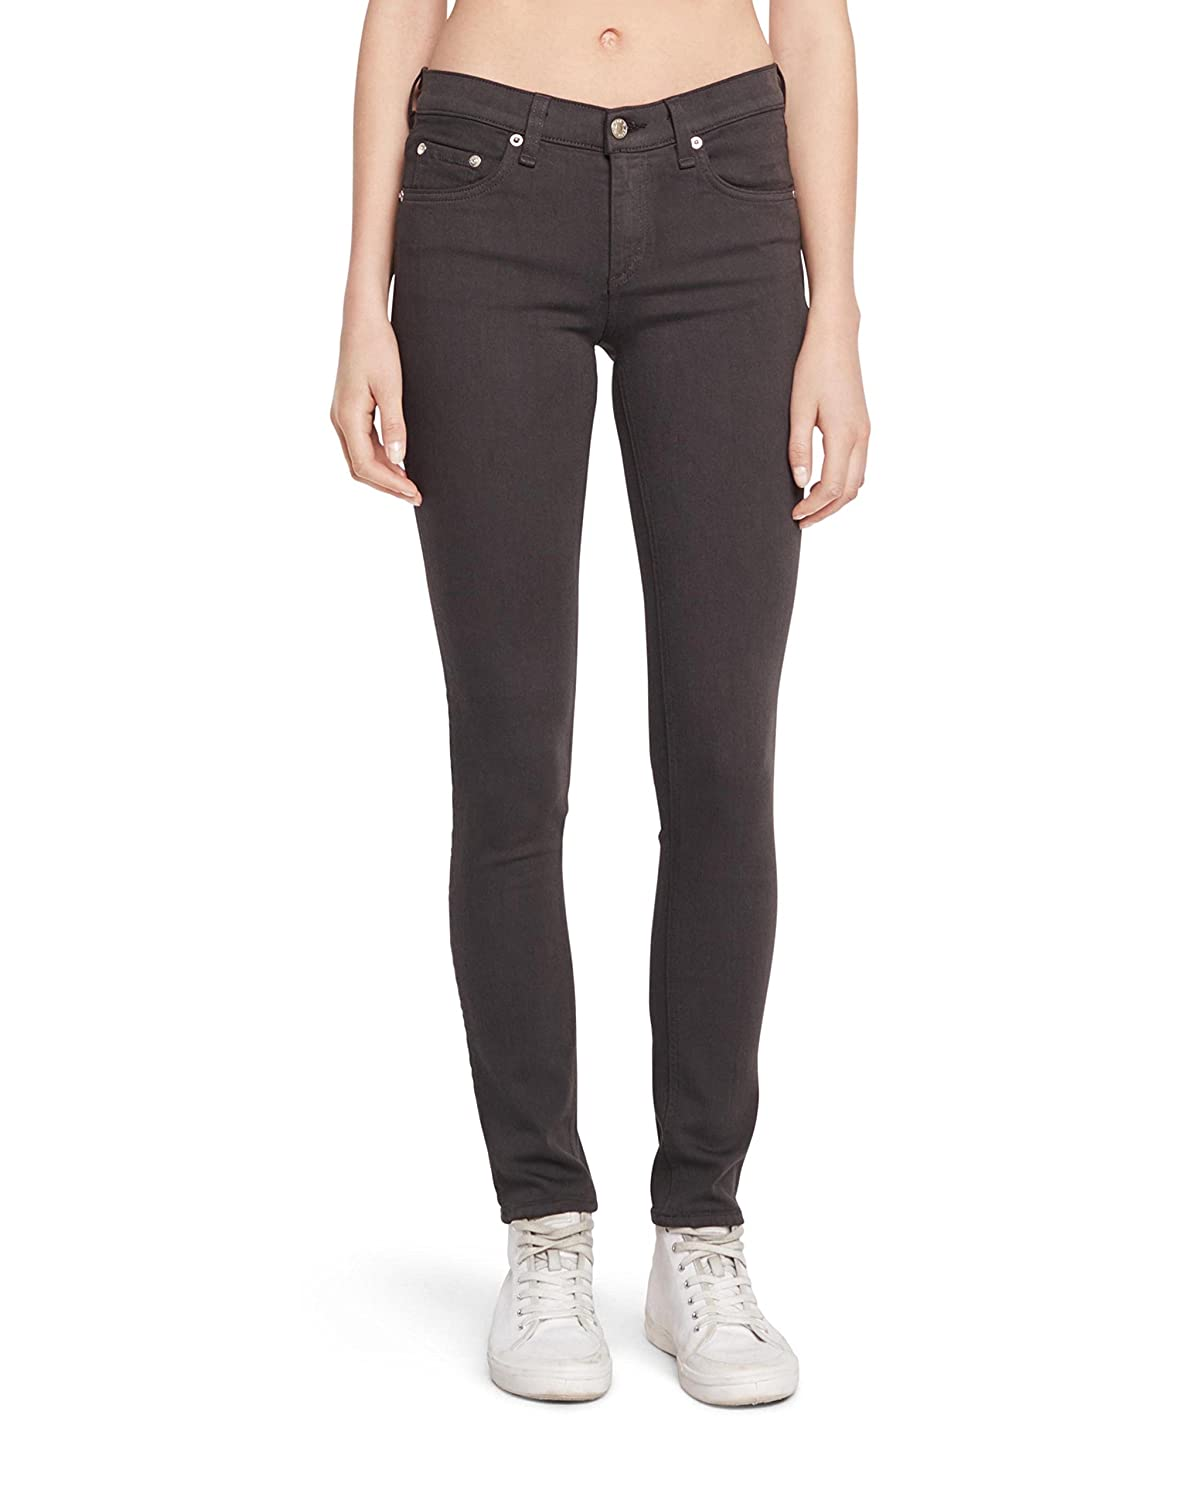 108756a97b Rag & Bone Women's Skinny Jeans Charcoal, Size 28 80%OFF. Stunner Men's  Fashion Camo Army Combat Camouflage Cargo Pants good